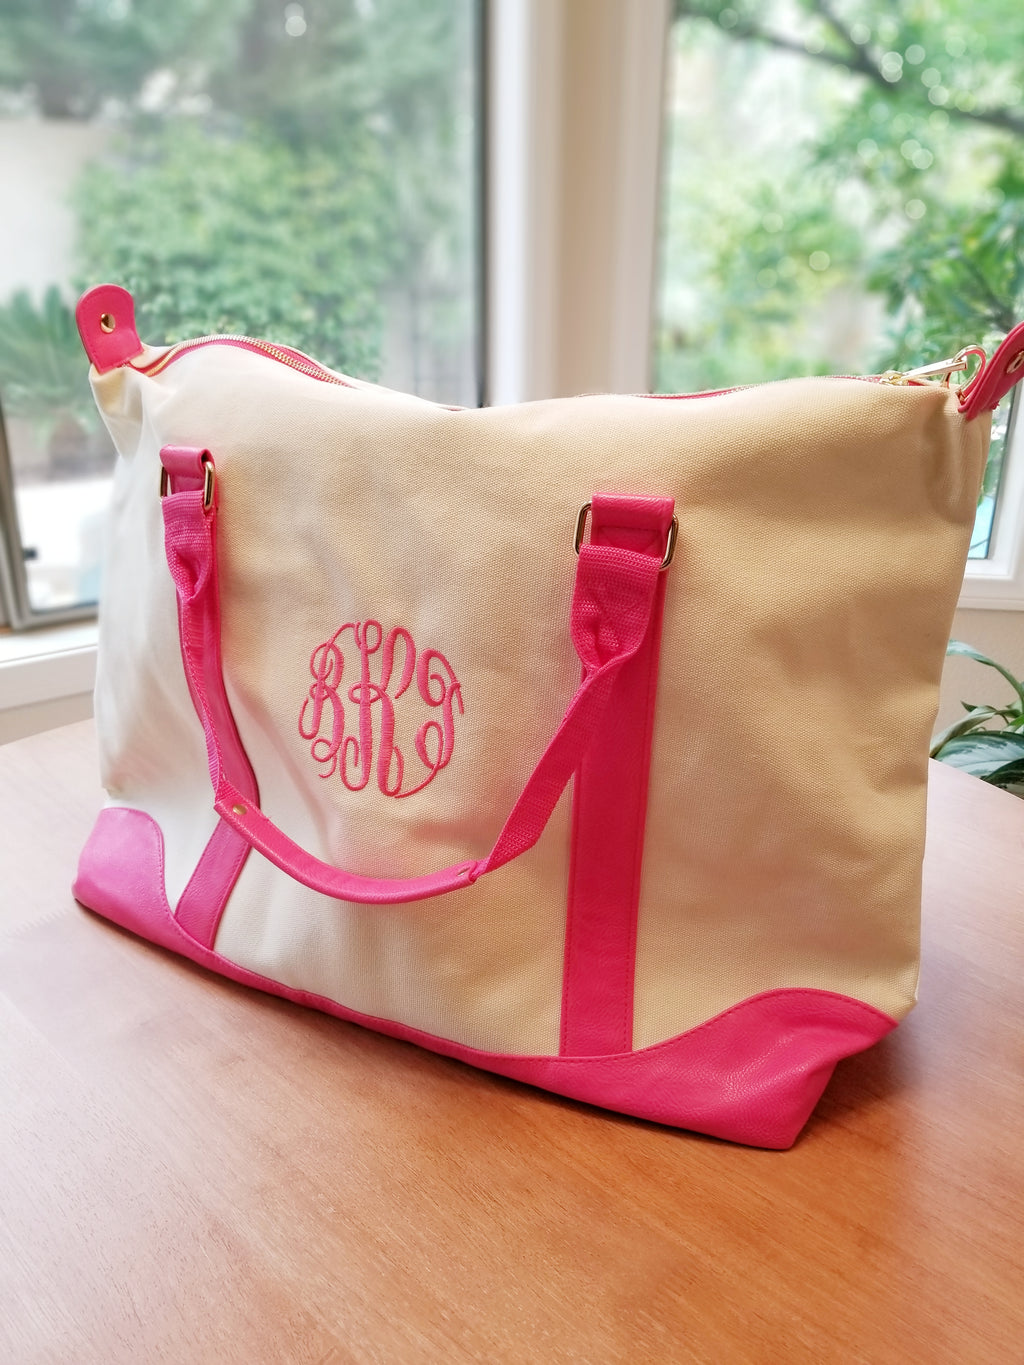 The Ella Winston Monogram Honeymoon Bag